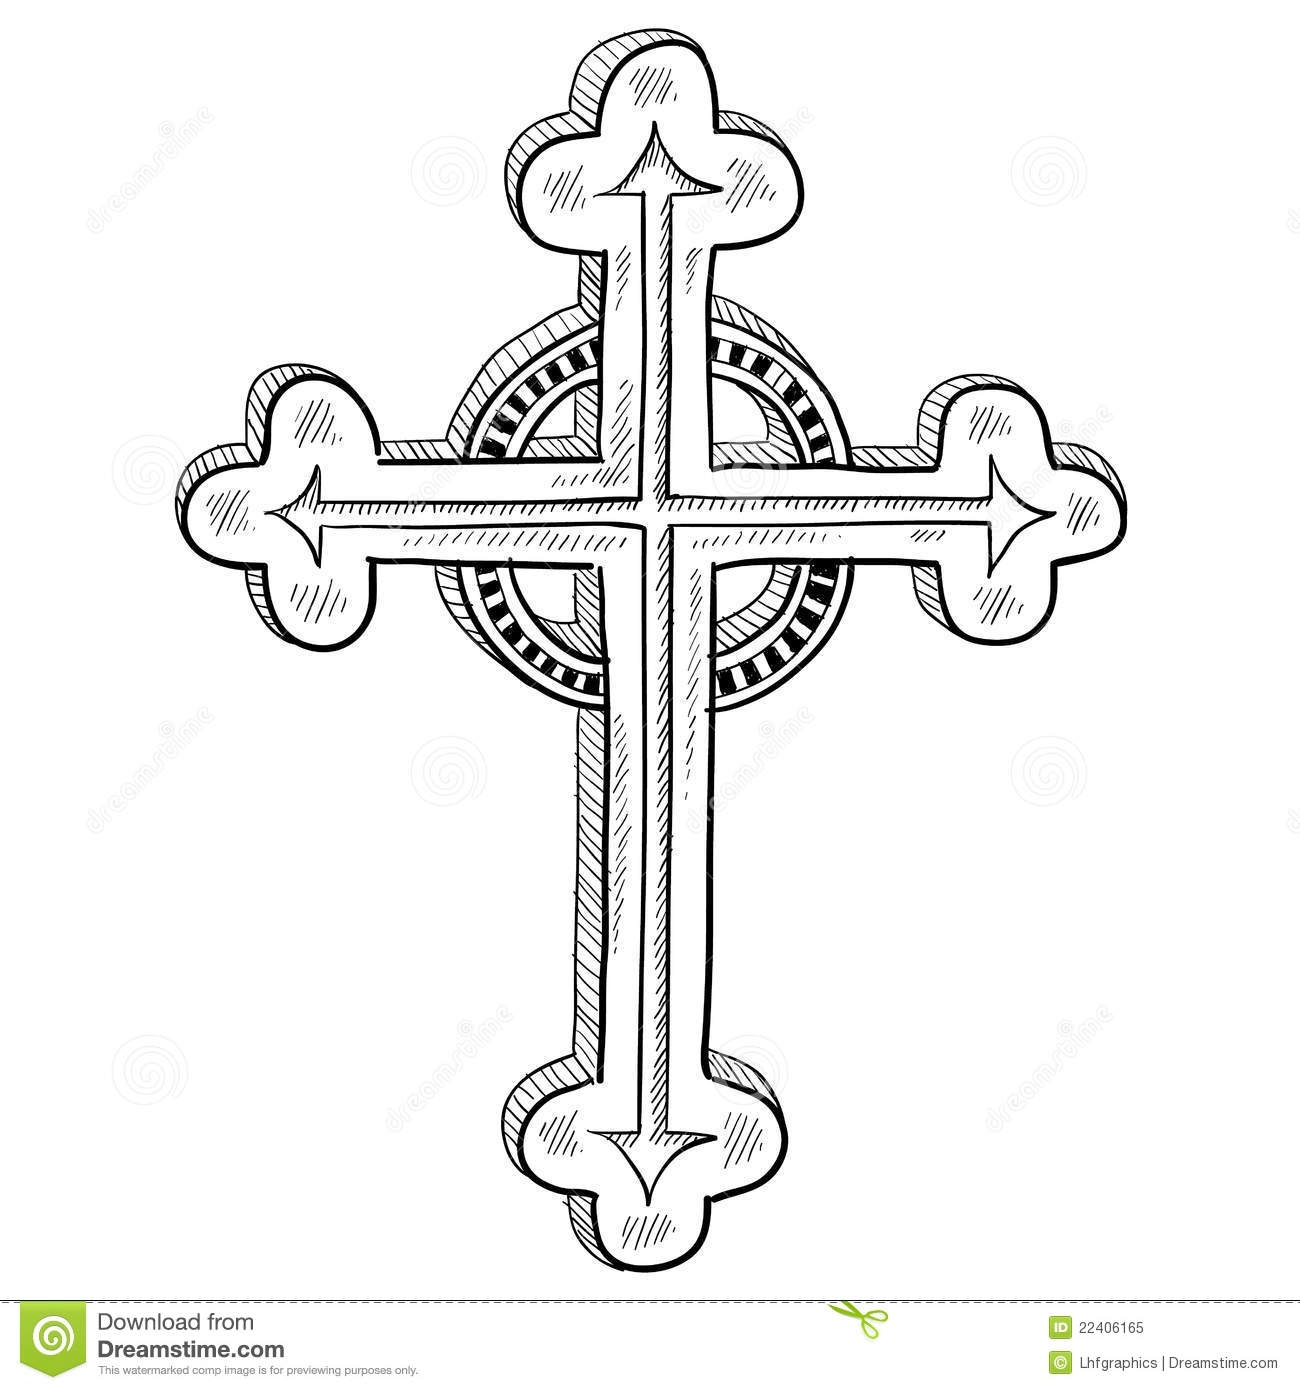 easter egg designs coloring pages royalty free stock photo orthodox cross sketch image